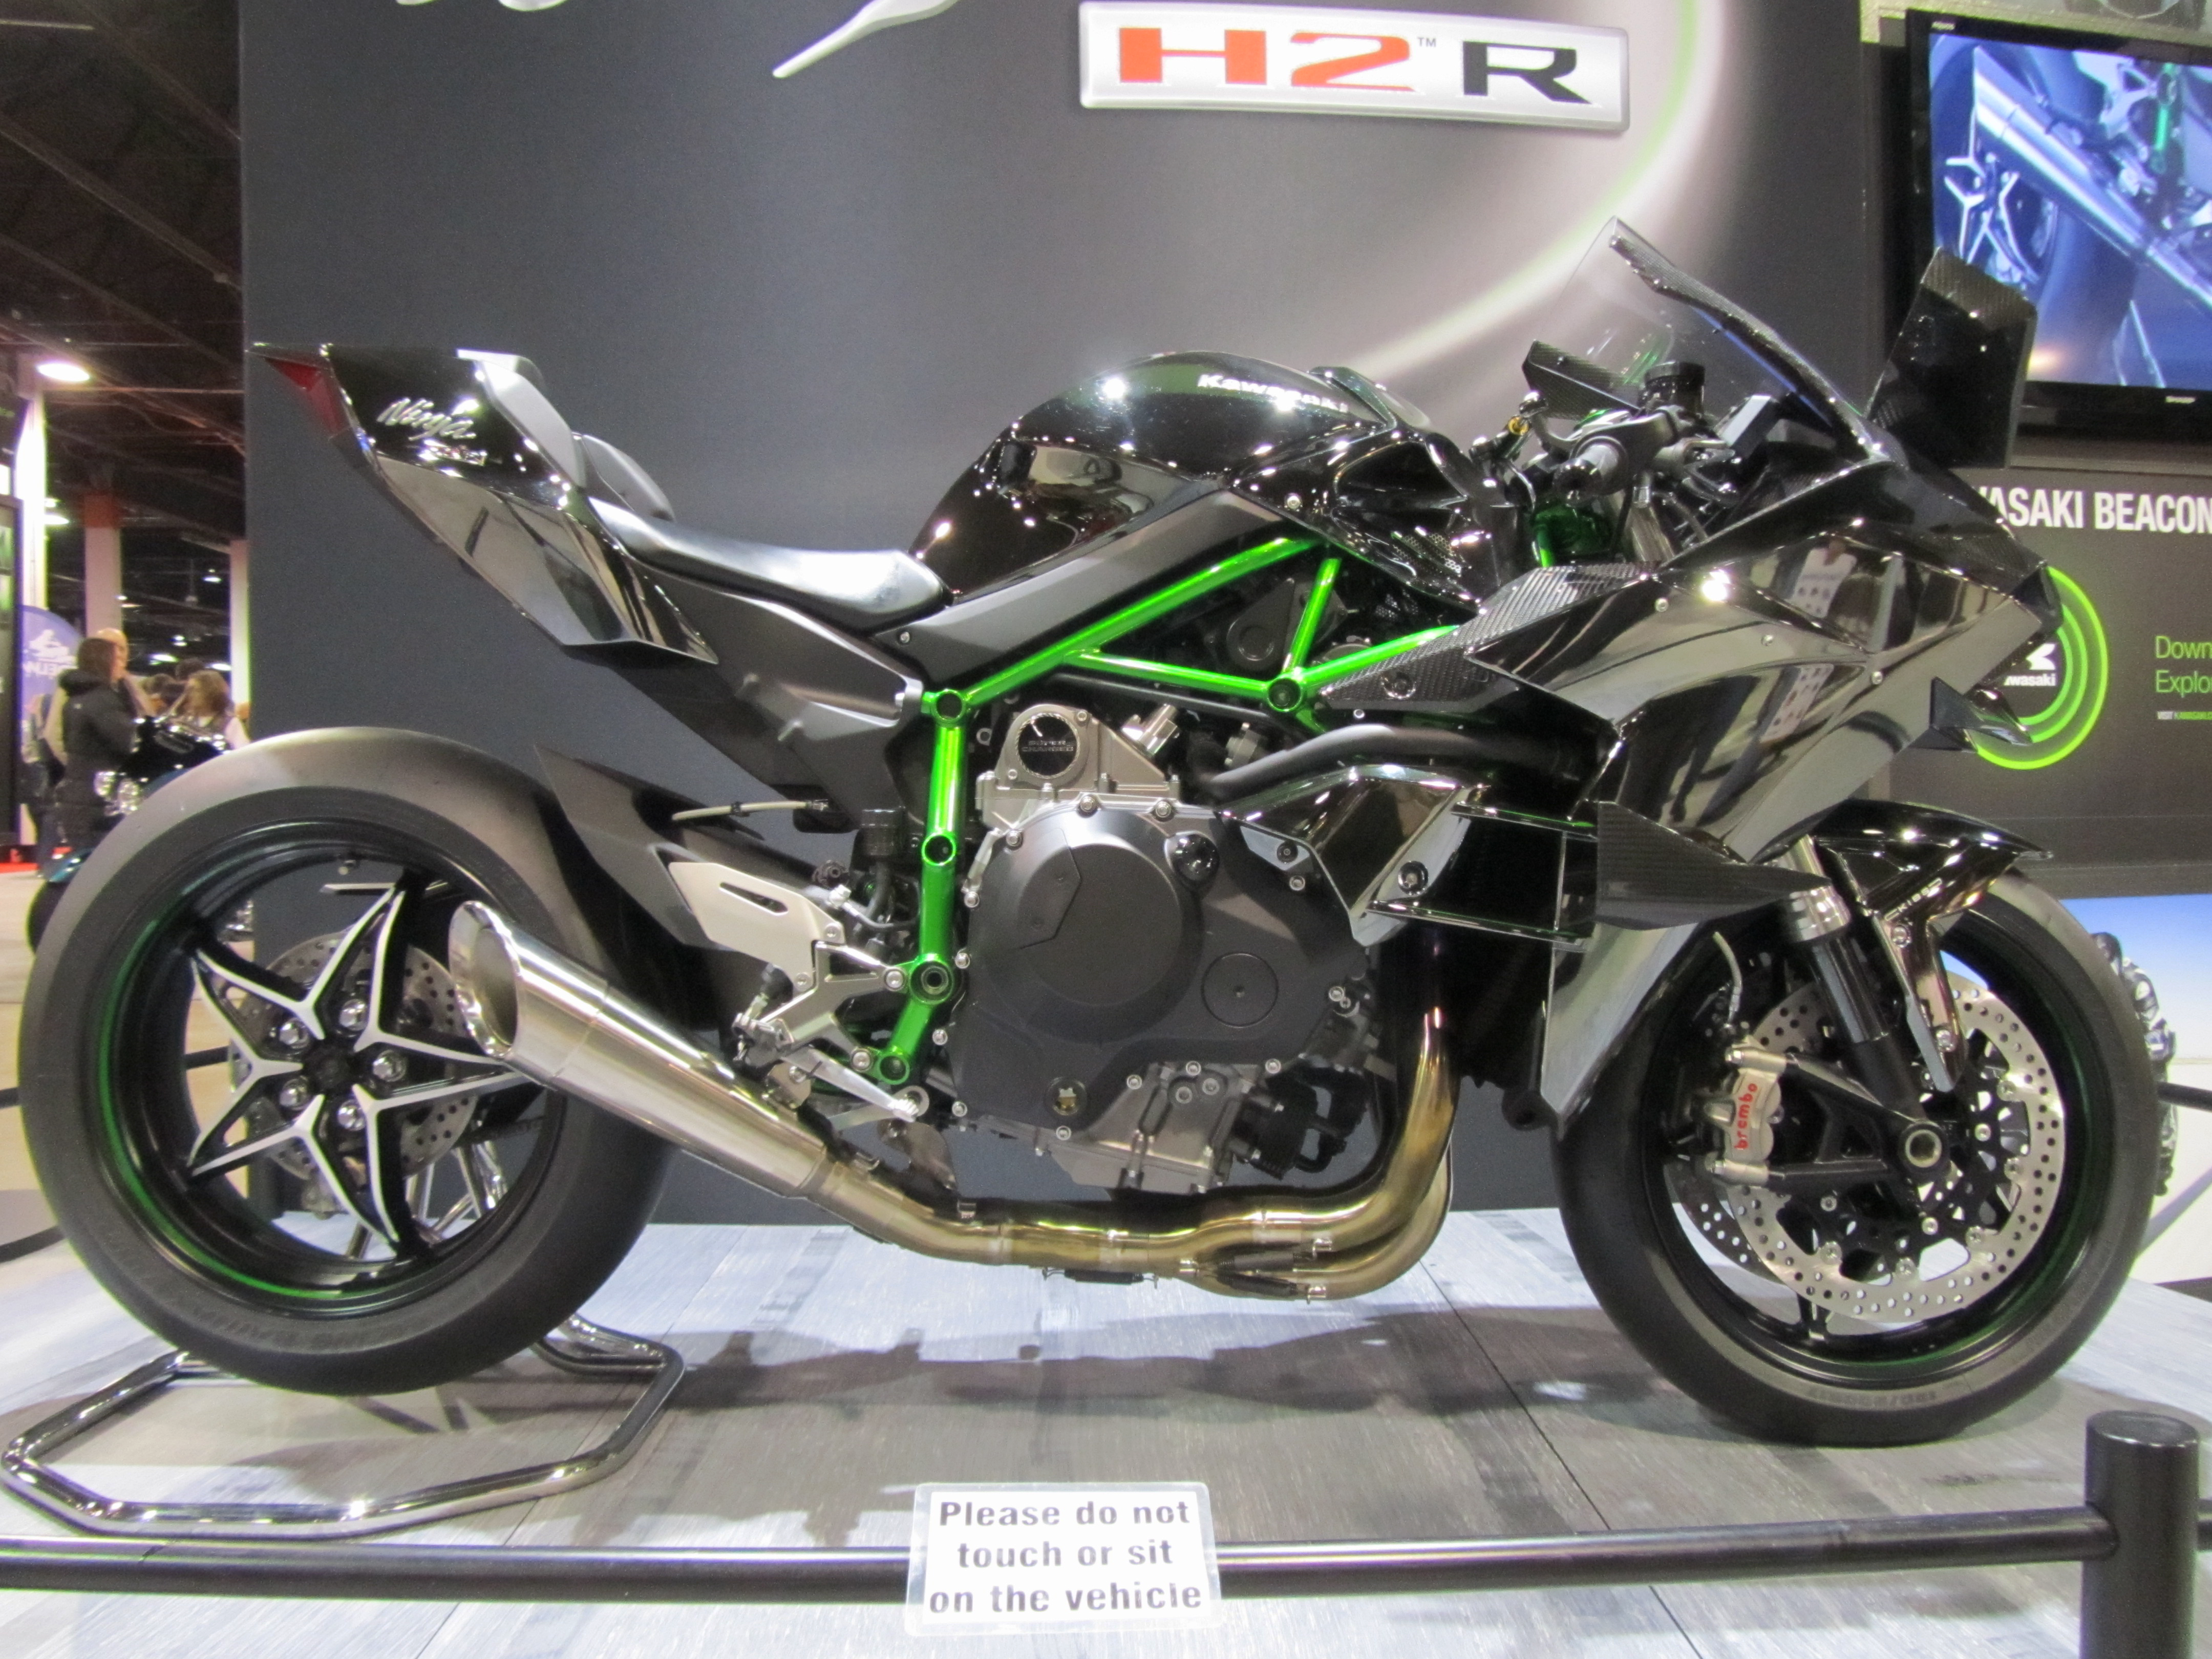 An In-Depth Look At Chicago's 2015 International Motorcycle Show